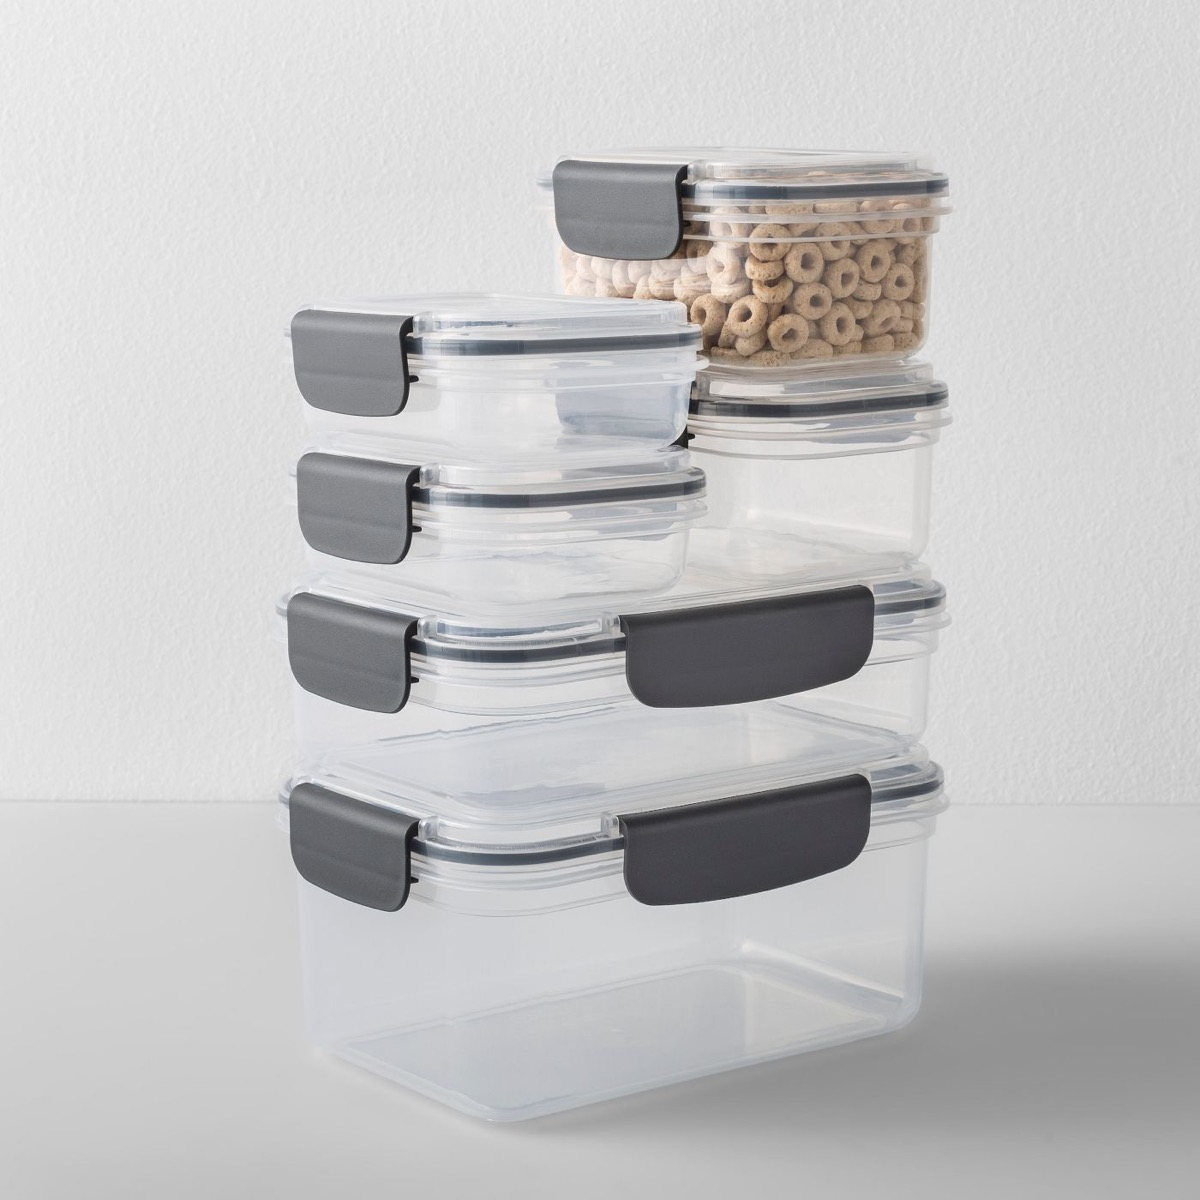 glass containers with gray snapping handles, cheap meal prep containers